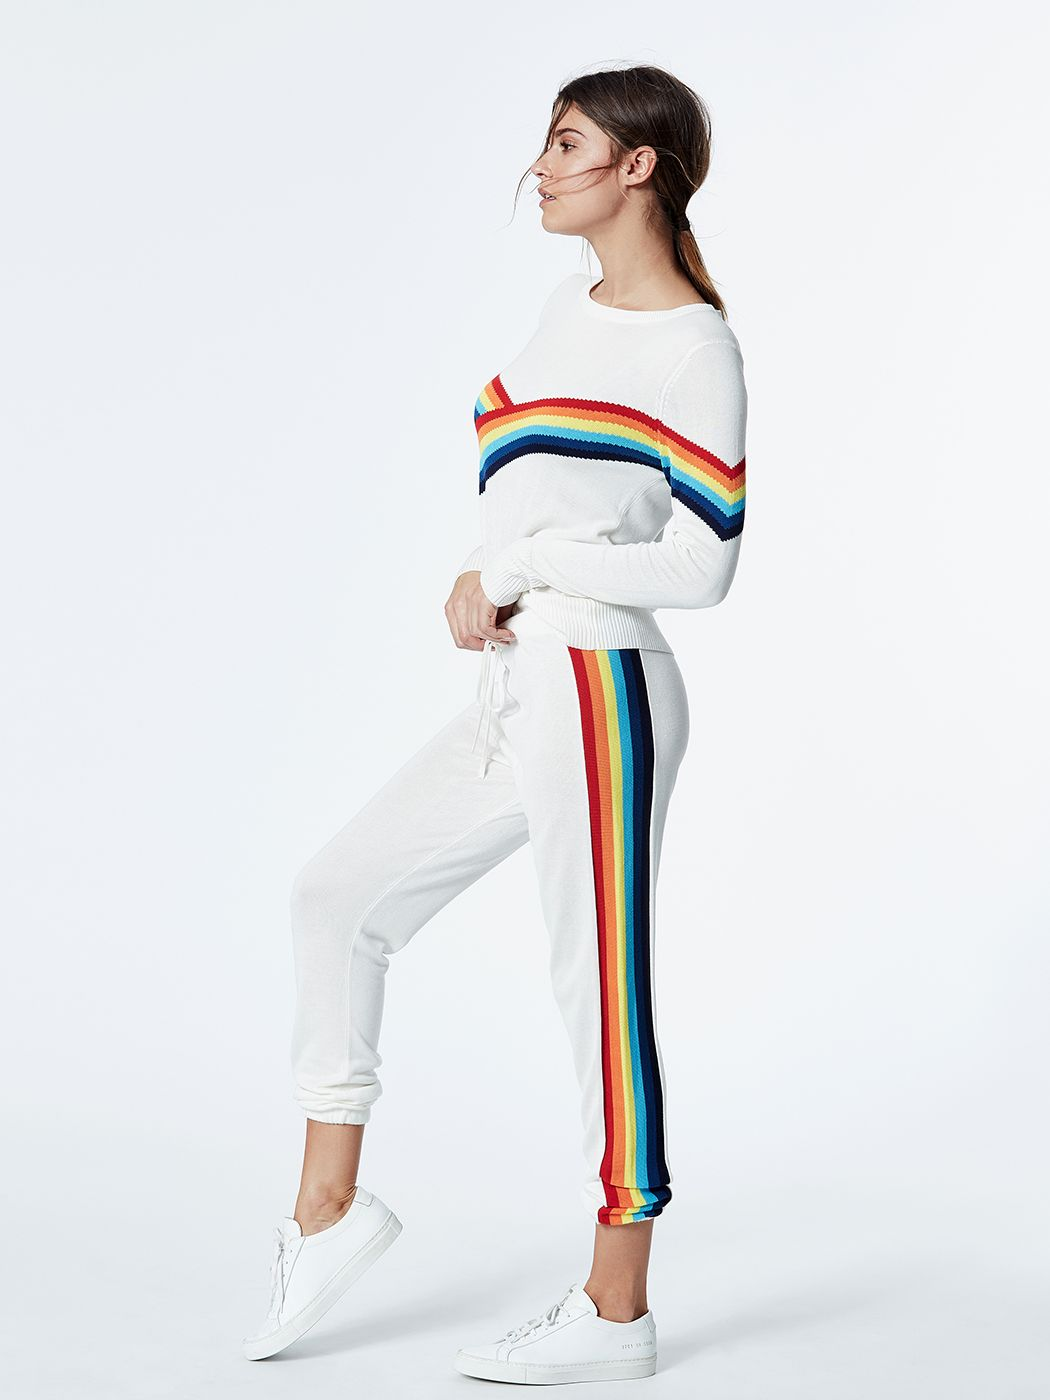 Model is wearing white, loose-fitting, tapered sweatpants with tie waist and elastic band bottoms. The pants feature a rainbow stripe running alongside the legs.